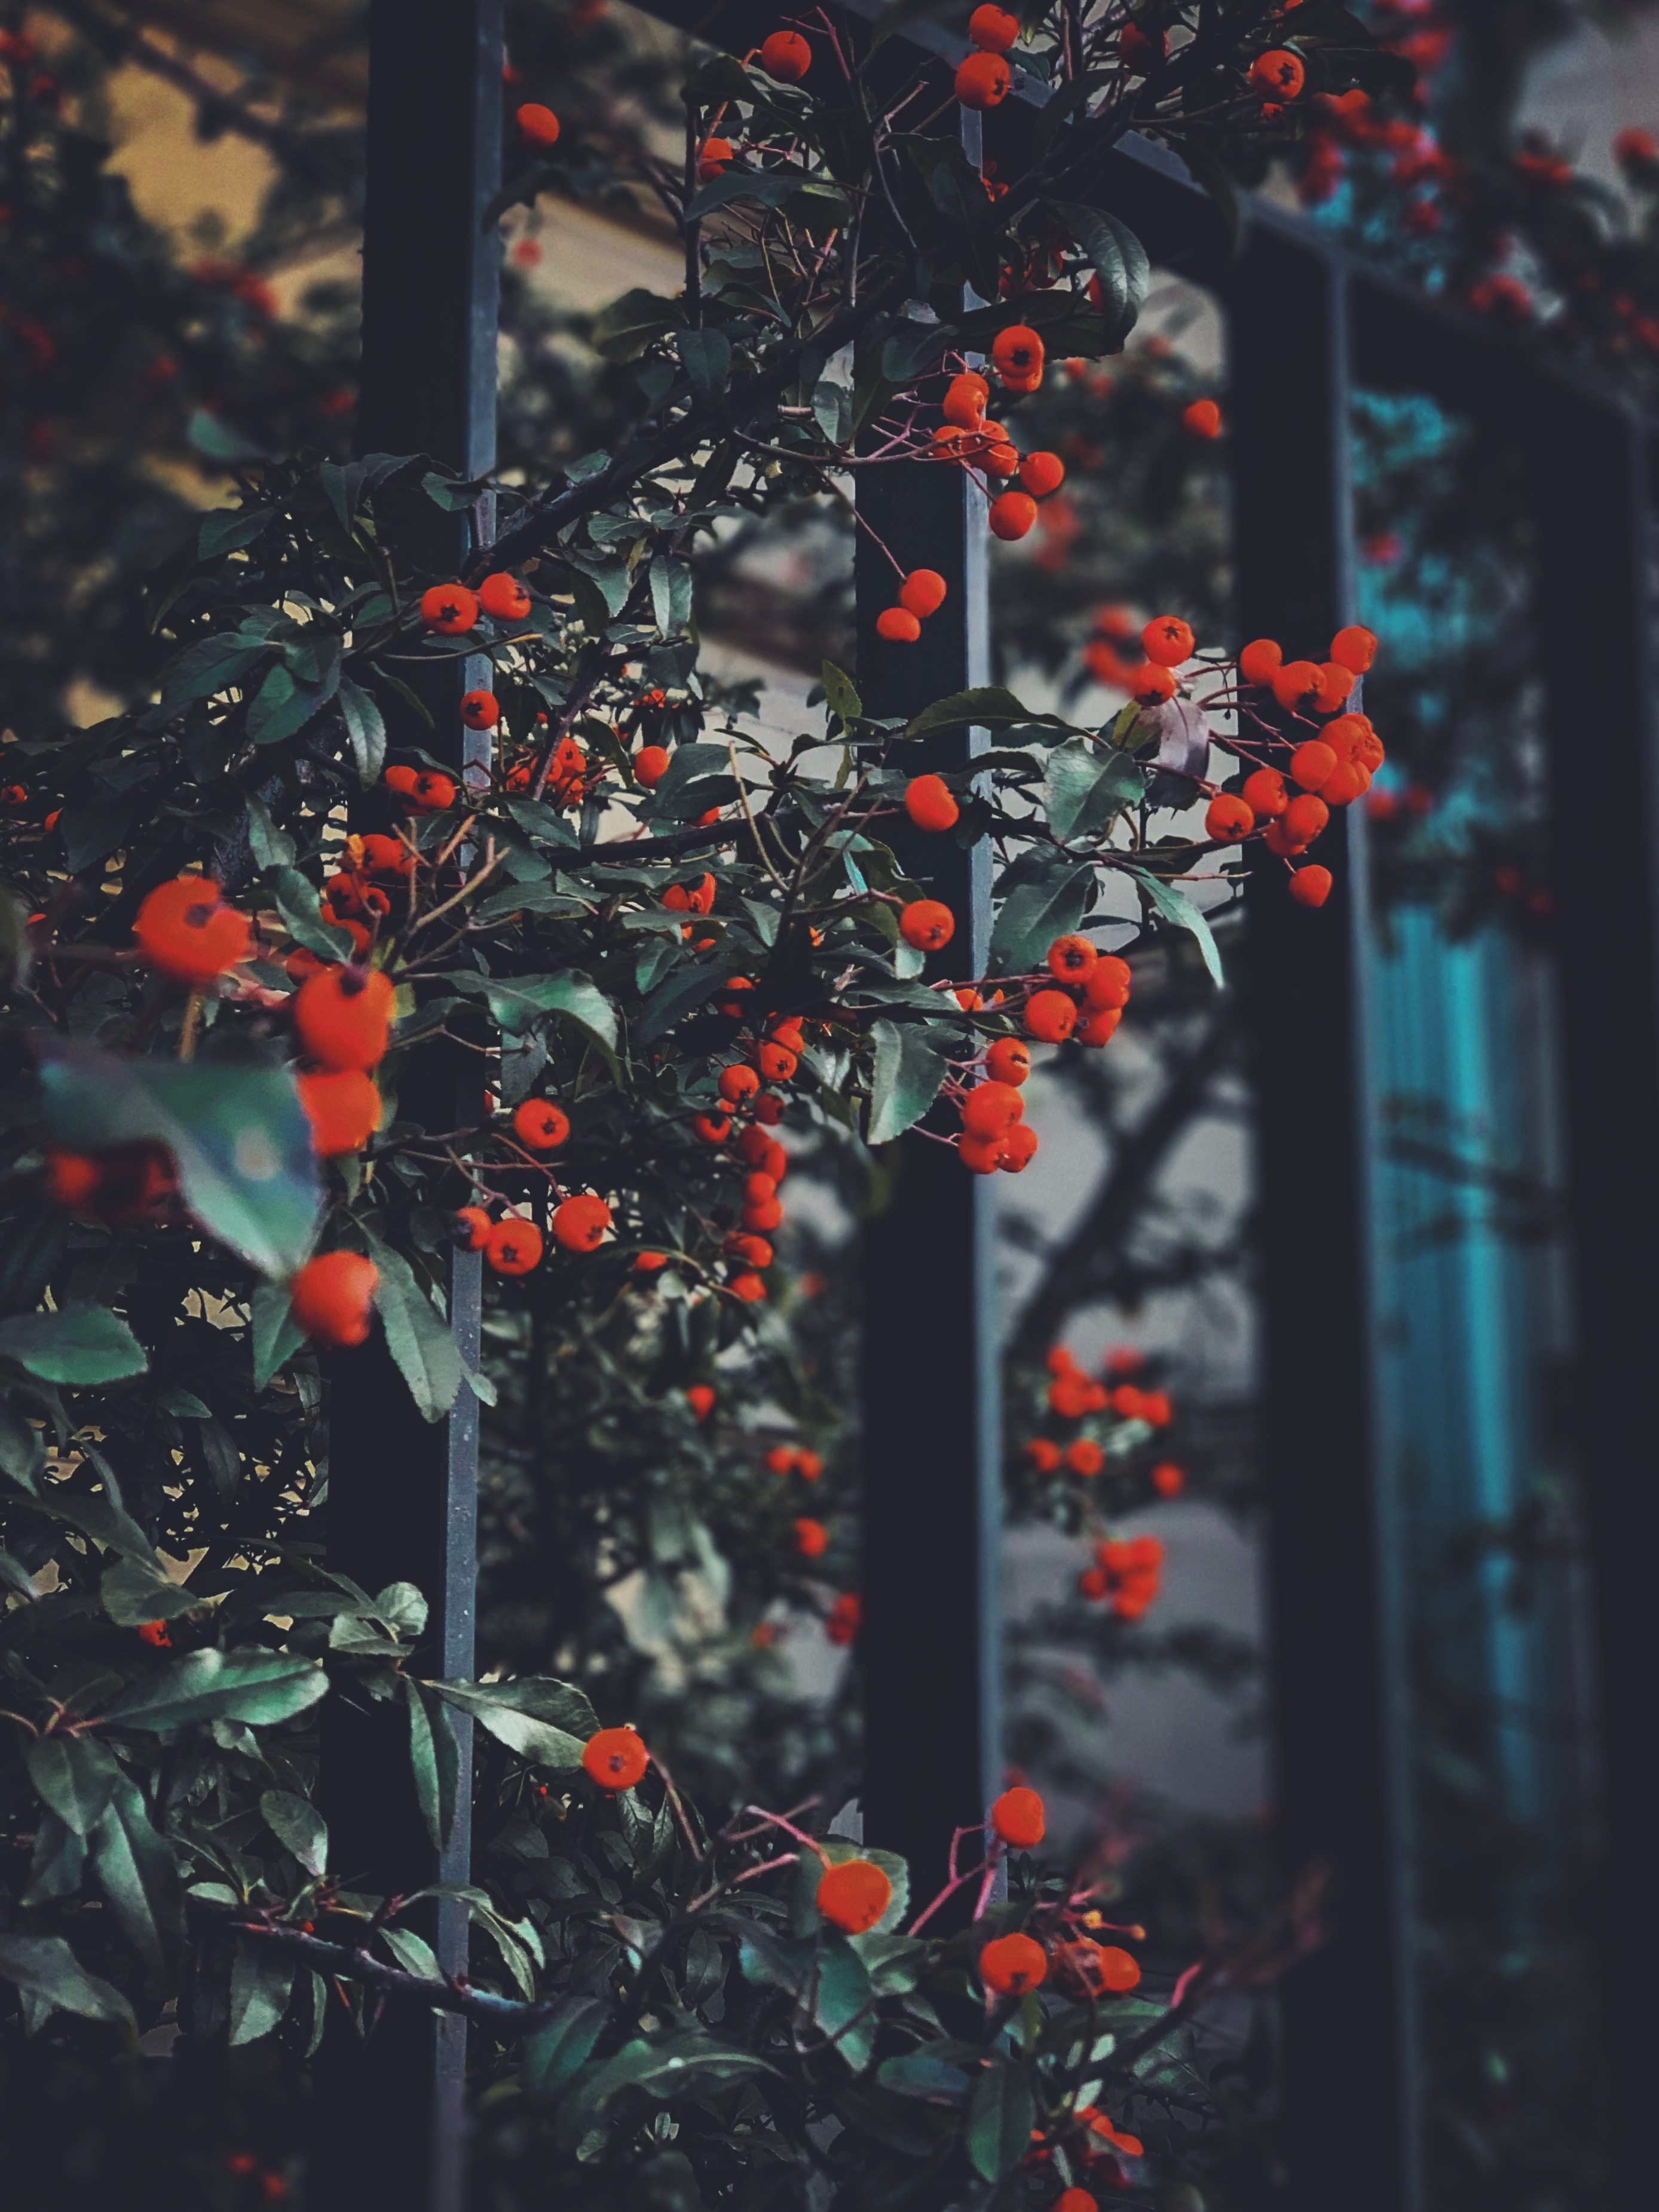 85310 download wallpaper Nature, Red Berries, Leaves, Branches, Berries screensavers and pictures for free